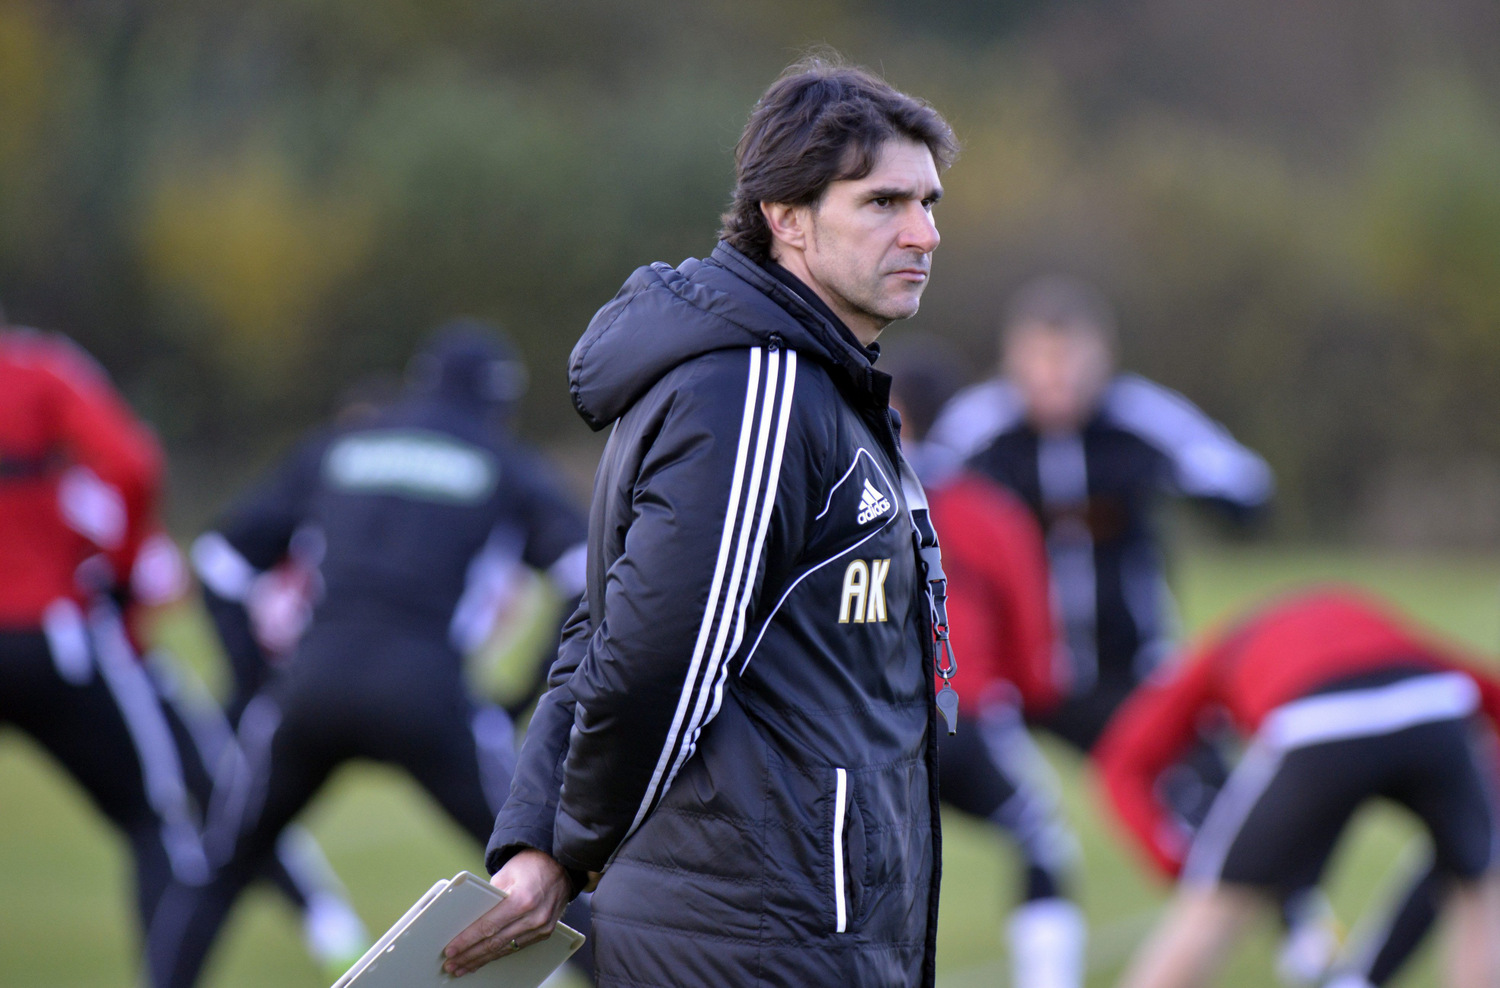 CHANGE OF PLAN: Aitor Karanka admits his mindset has changed regarding the the type of player he wants to sign